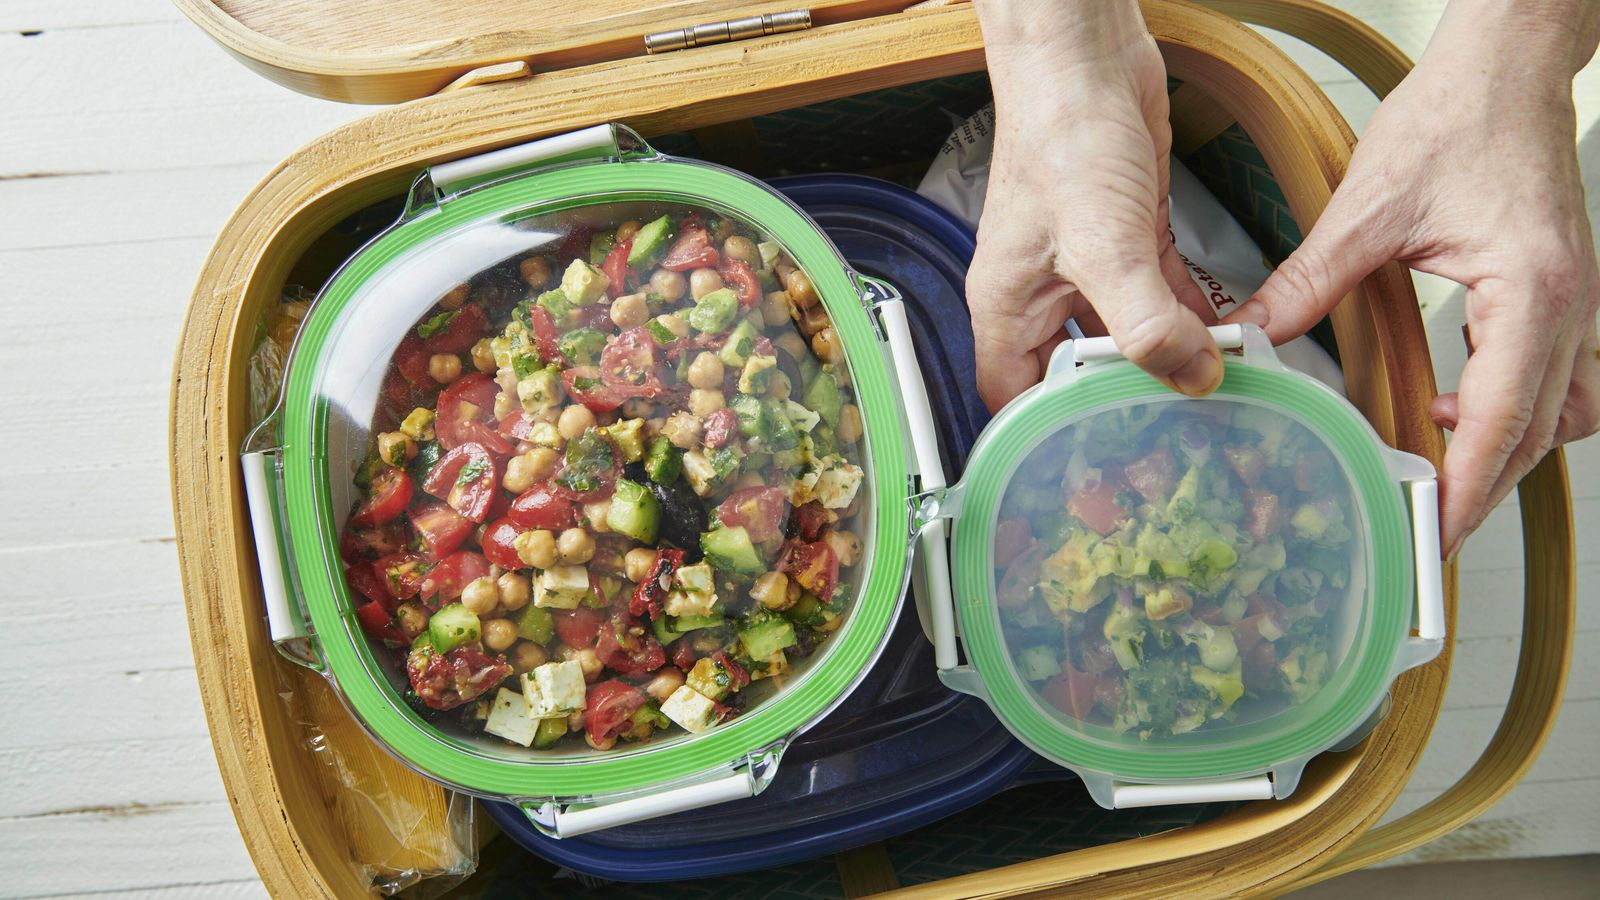 Easy Breezy Planning Ahead Can Make Your Picnic Just That